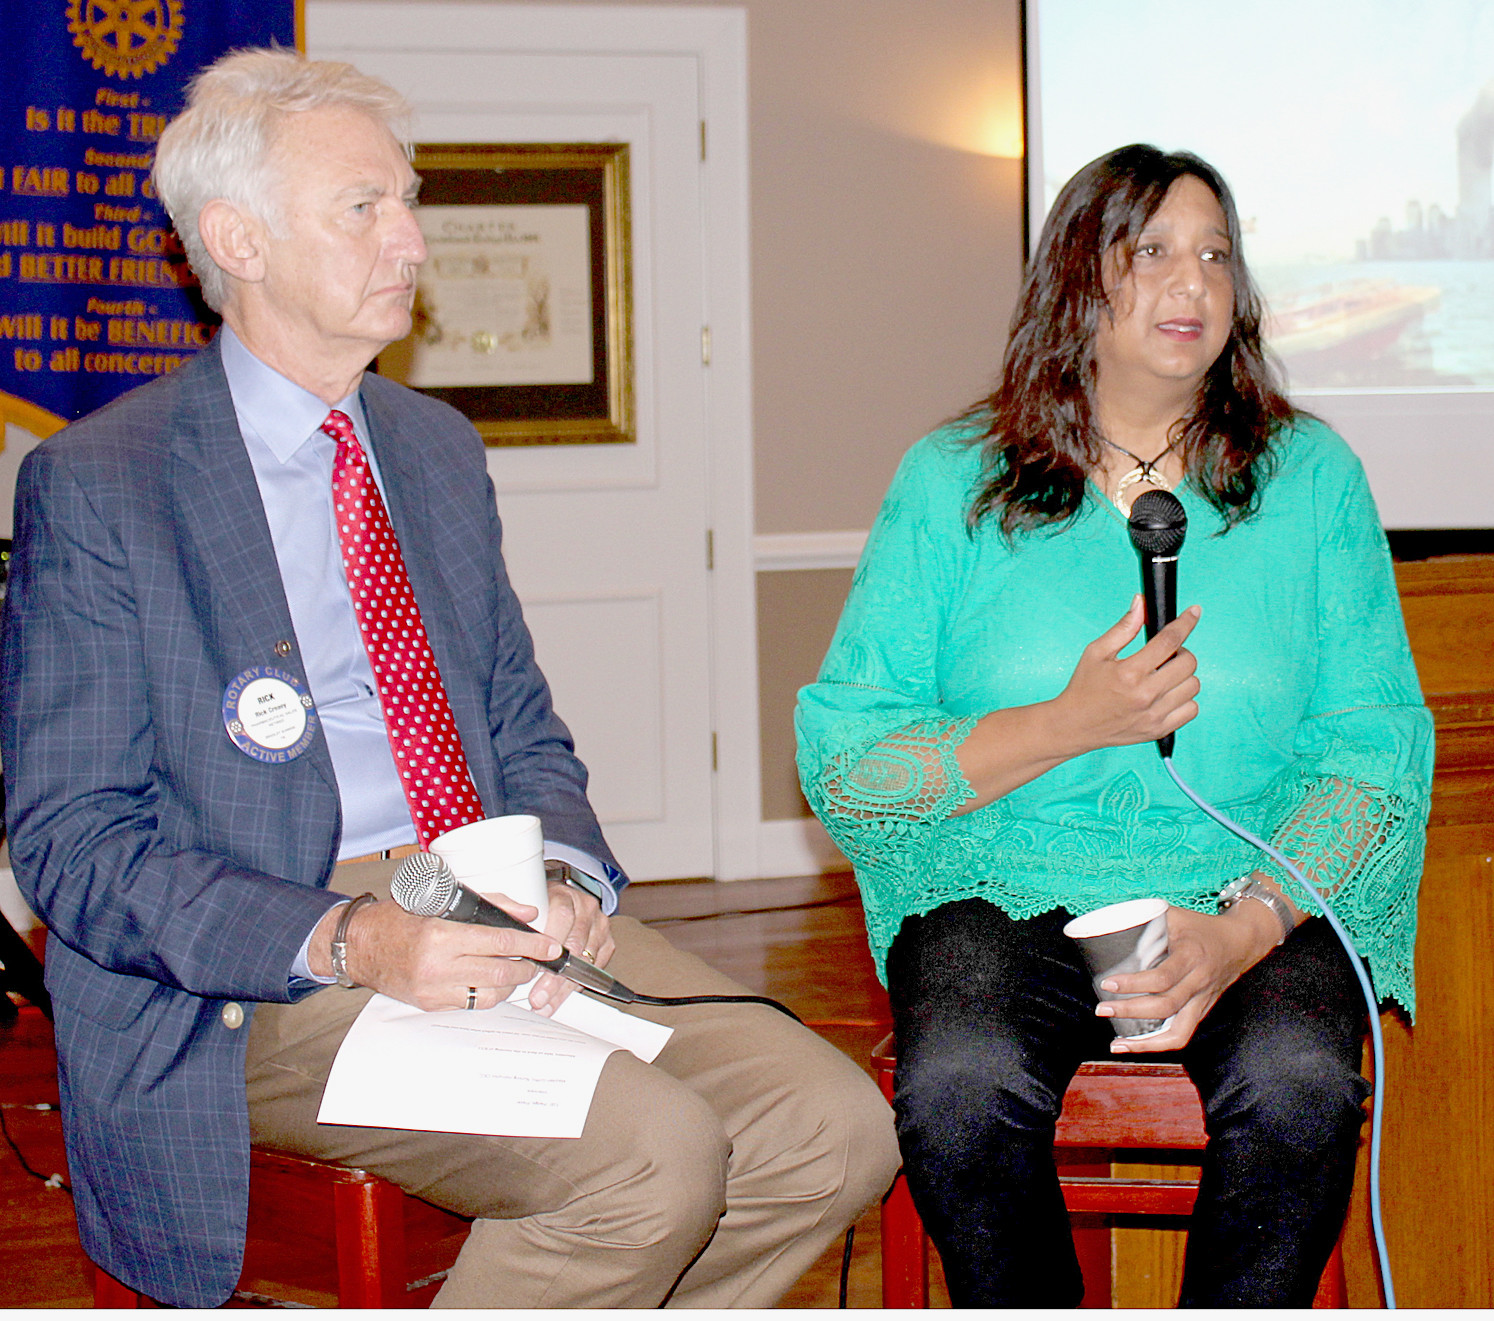 MAUREEN BAKSH-GRIFFIN, right, shares her recollection of 9/11 during a question-and-answer session with Bradley Sunrise Rotary Club President Rick Creasy. Her brother, Michael S. Baksh, died in the attacks on the World Trade Center towers on Sept. 11, 2001.